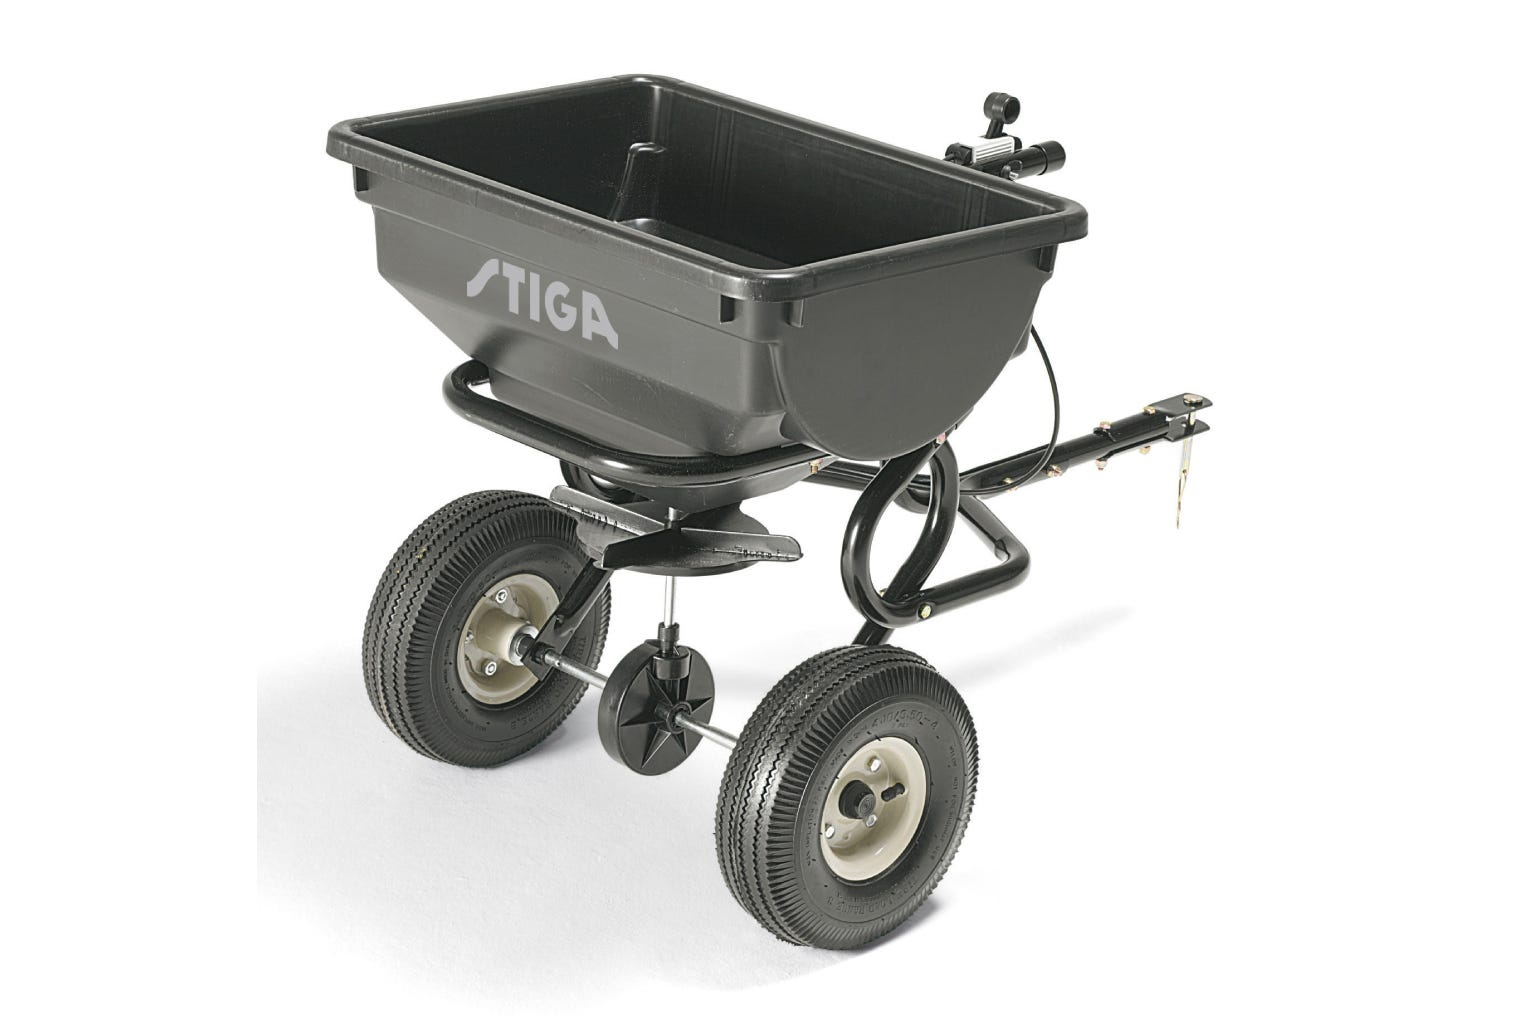 You can easily apply salt, lime, sand, fertiliser and seeds over large areas by attaching a STIGA rotary spreader to your Park front mower.